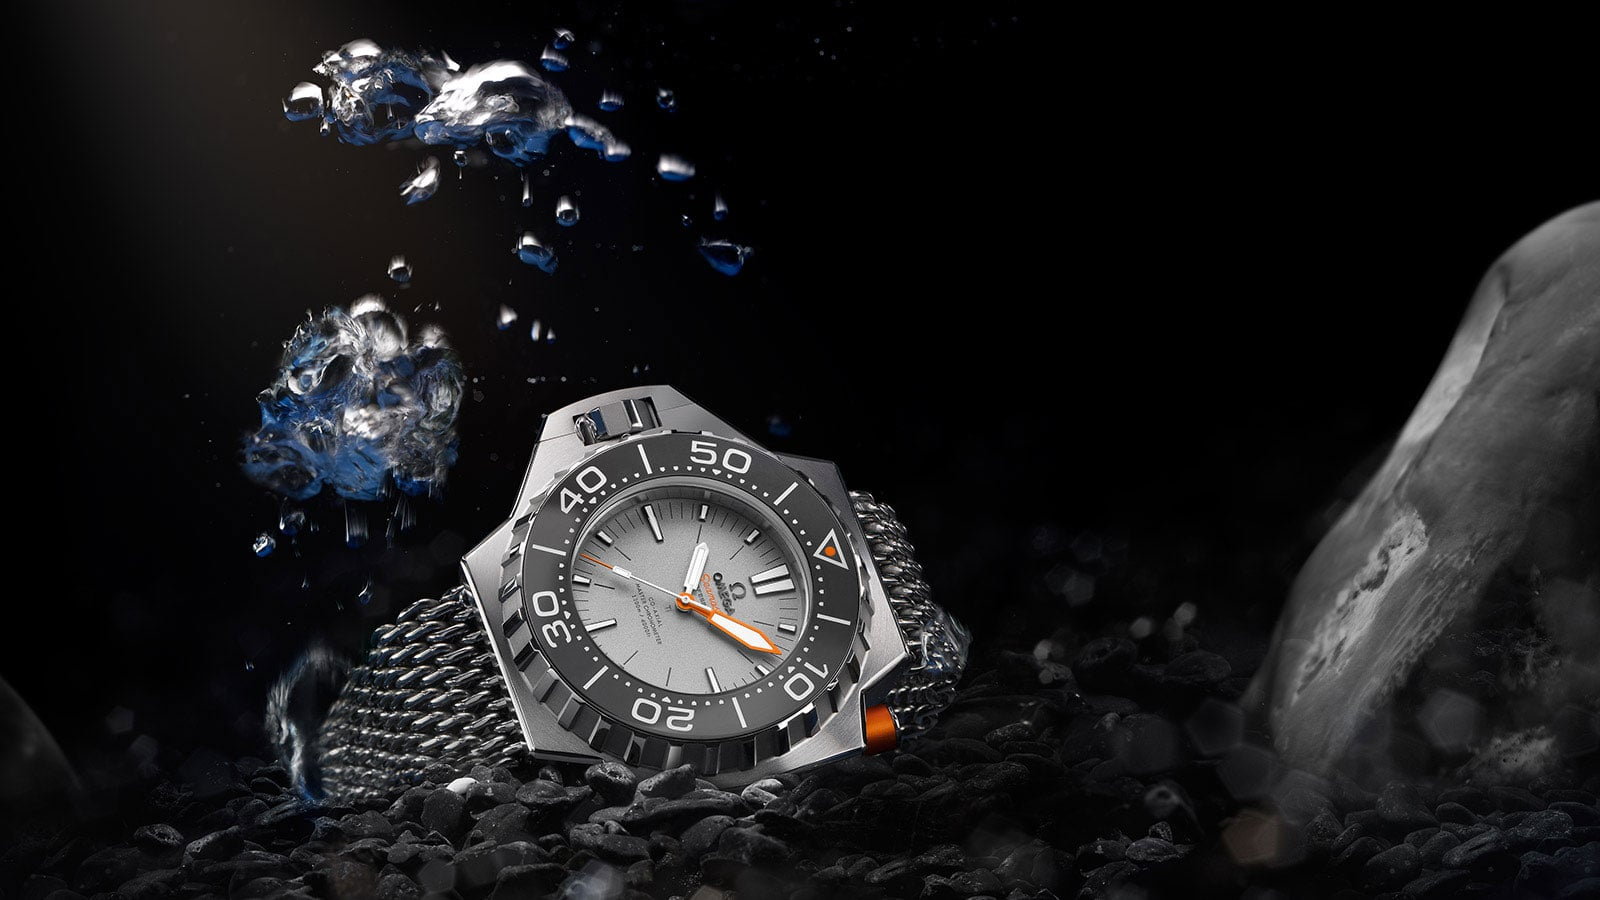 Ploprof 1200 M watch with titanium bracelet and grey benzel and face presented underwater